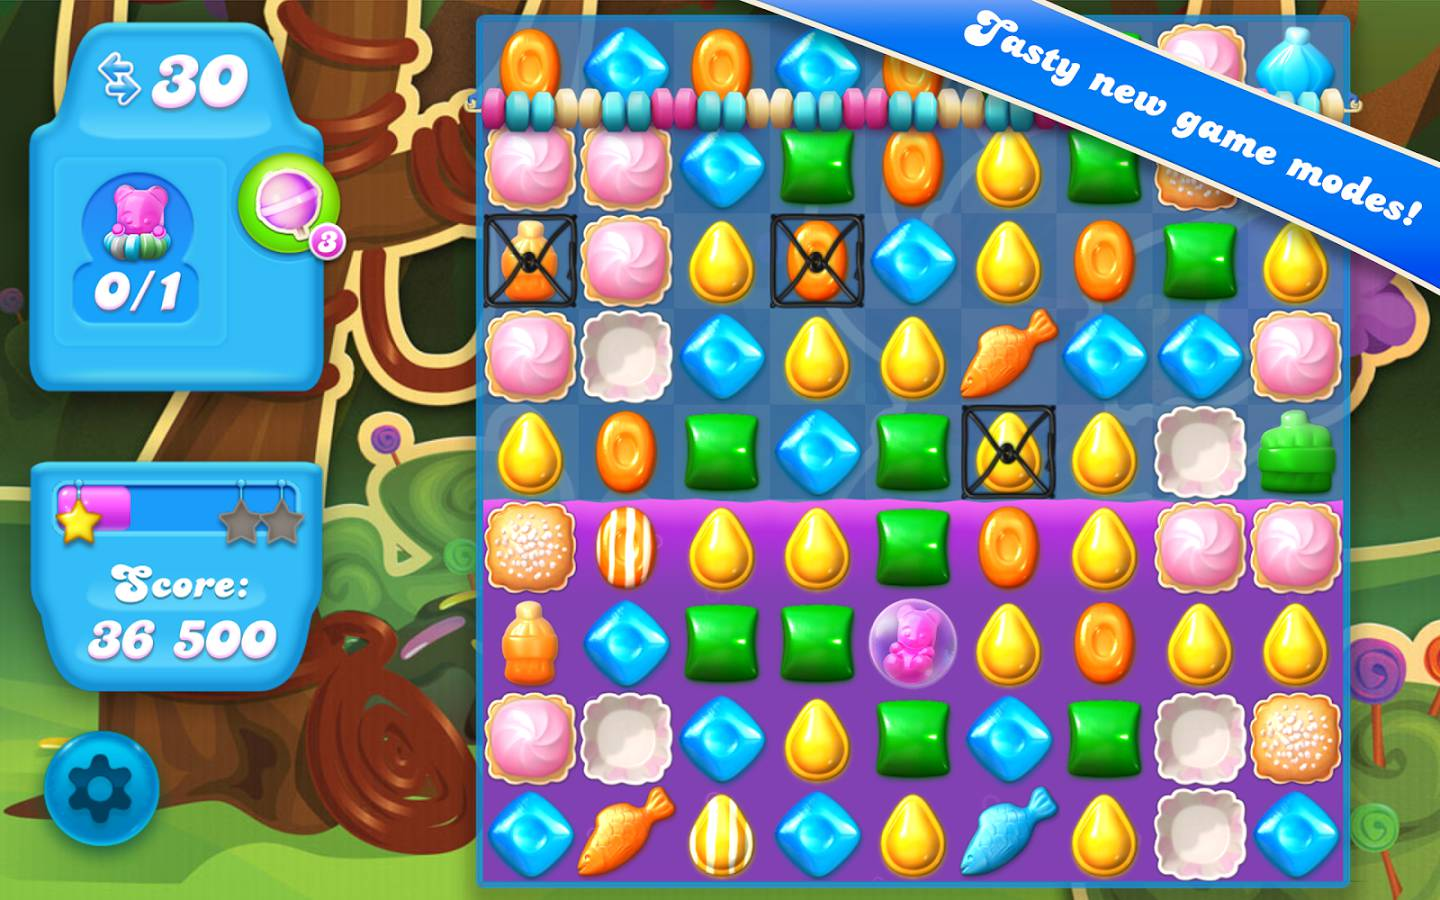 King Soft Launches Candy Crush Soda Saga The Sequel To The Mega